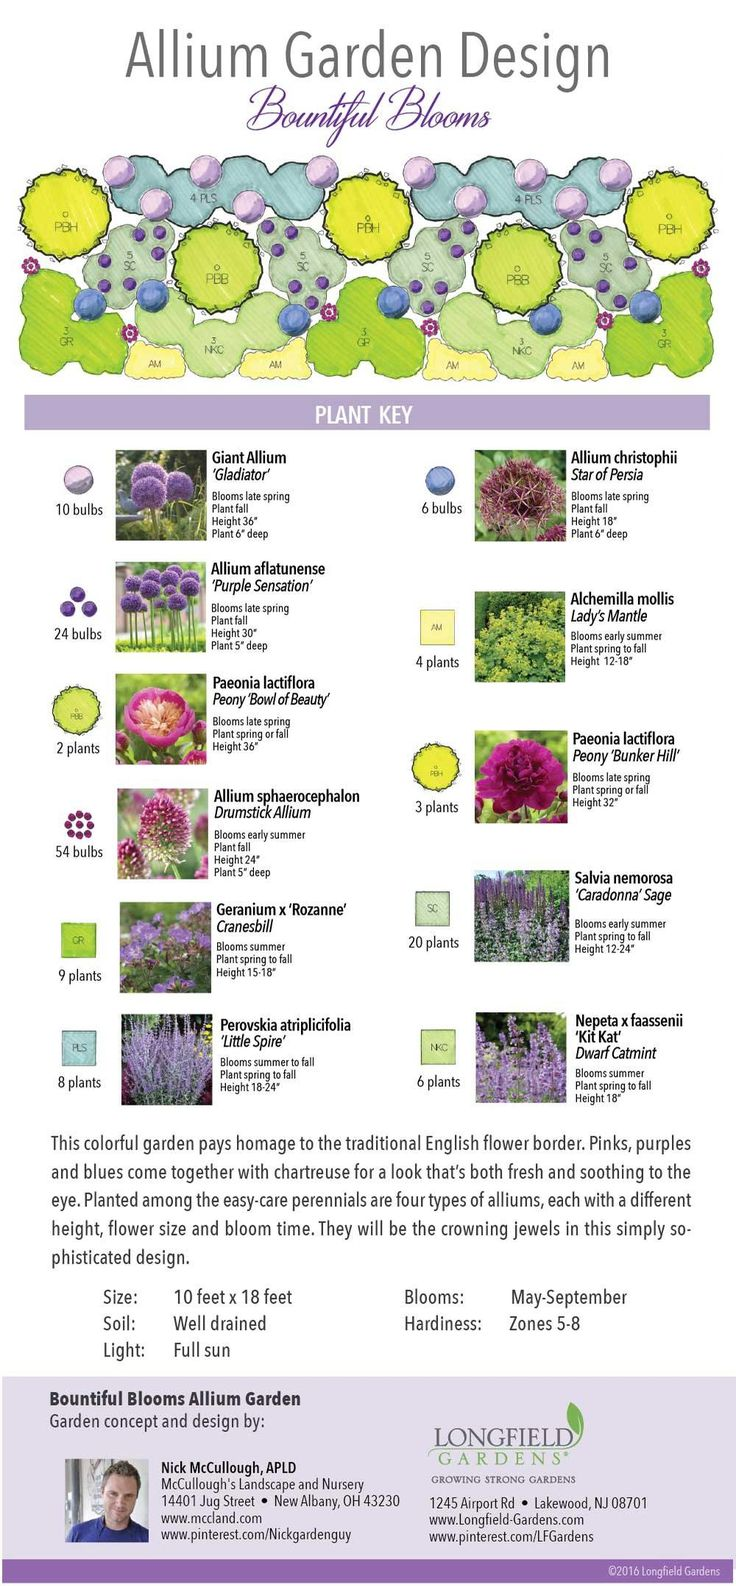 Allium Garden Design: Bountiful Blooms